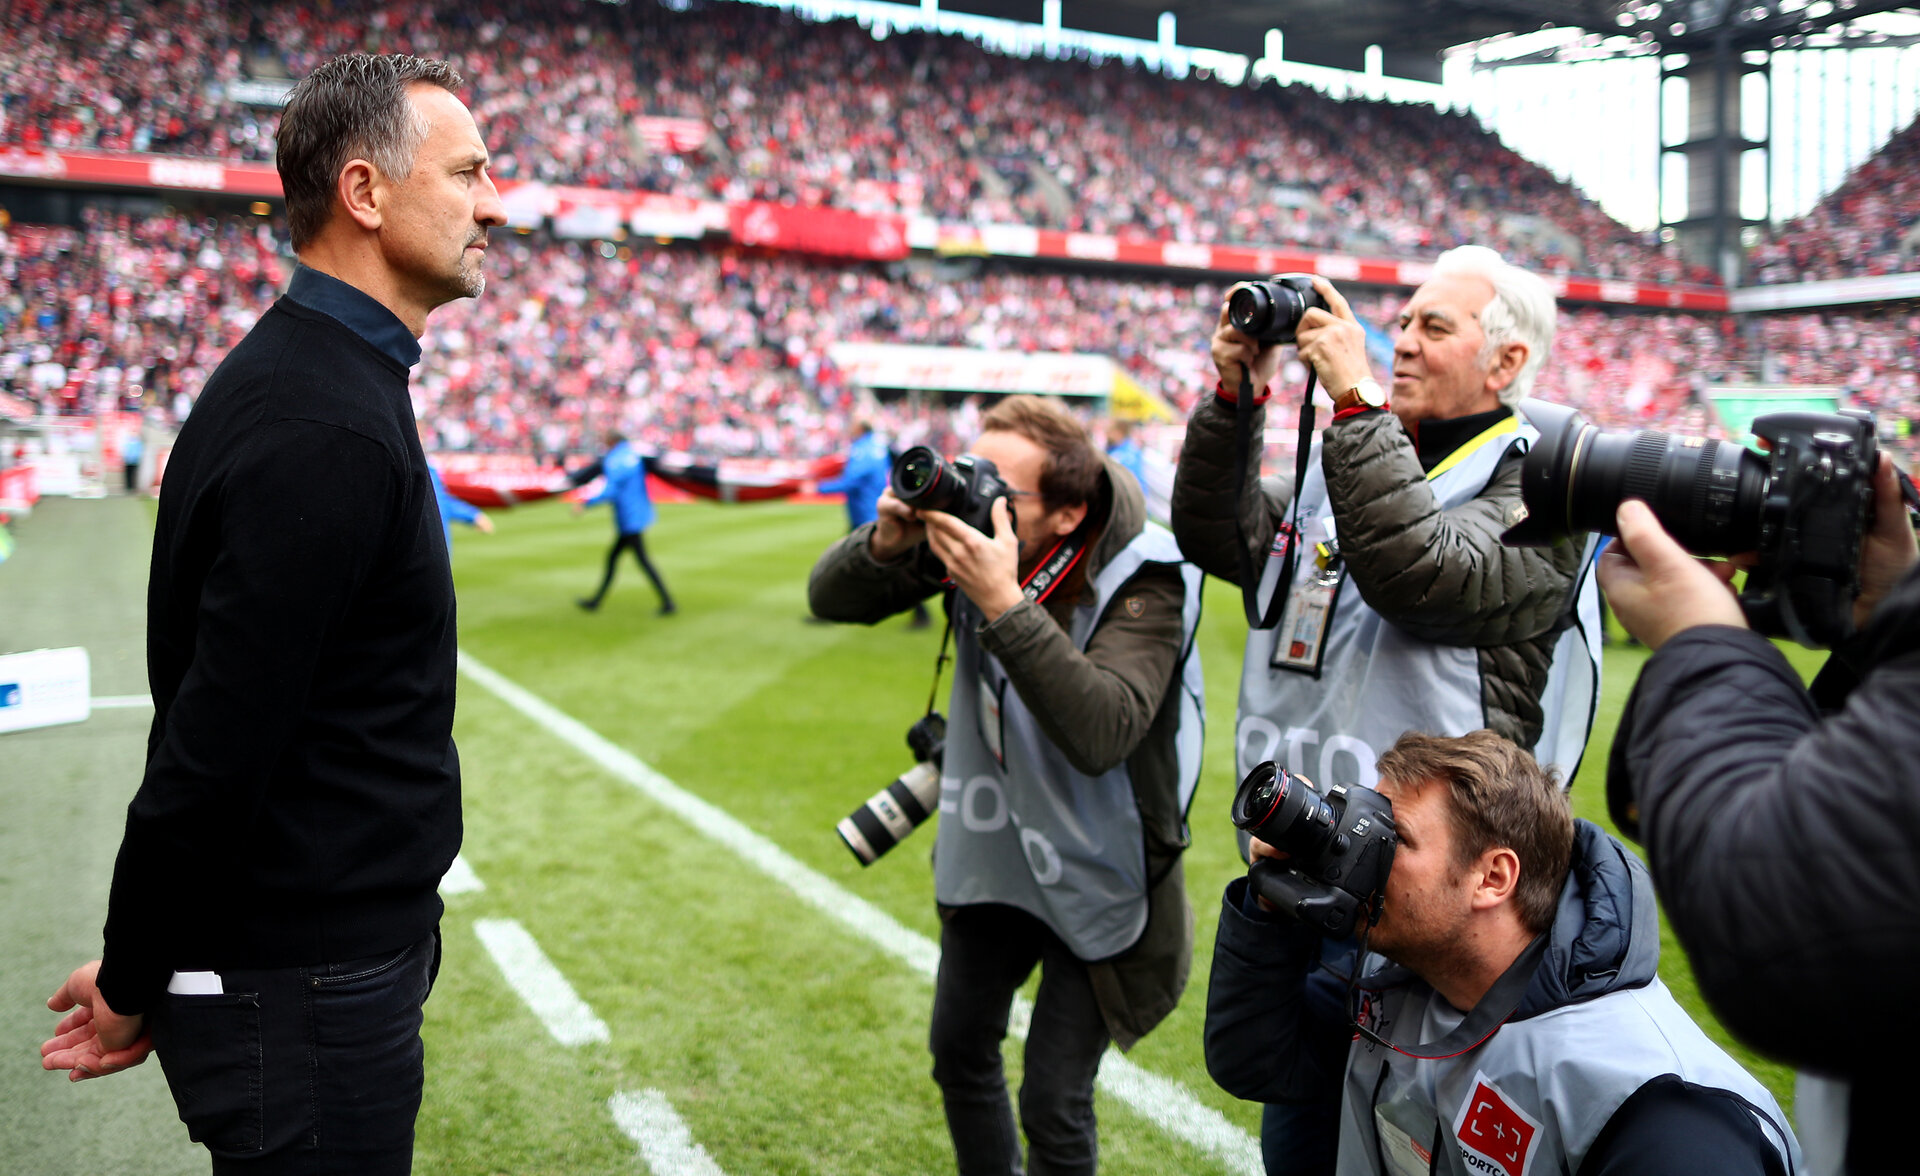 COLOGNE, GERMANY - MAY 12: Head coach Achim Beierlorzer of Regensburg is seen during the Second Bundesliga match between 1. FC Koeln and SSV Jahn Regensburg at RheinEnergieStadion on May 12, 2019 in Cologne, Germany. (Photo by Lars Baron/Bongarts/Getty Images)